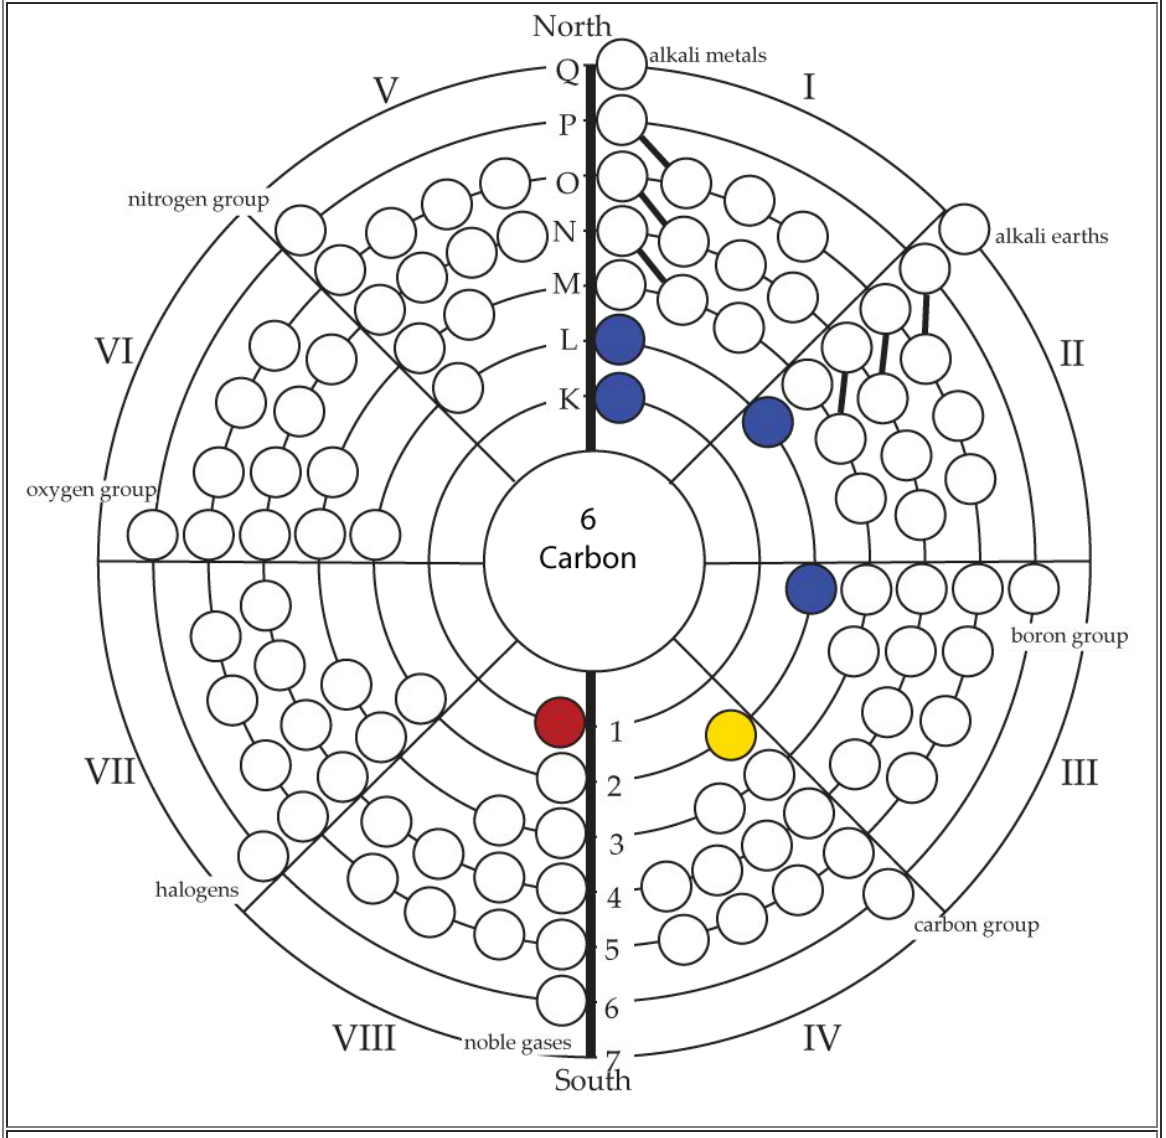 Periodic table database chemogenesis circular model of the atom opposition in the elements gamestrikefo Image collections